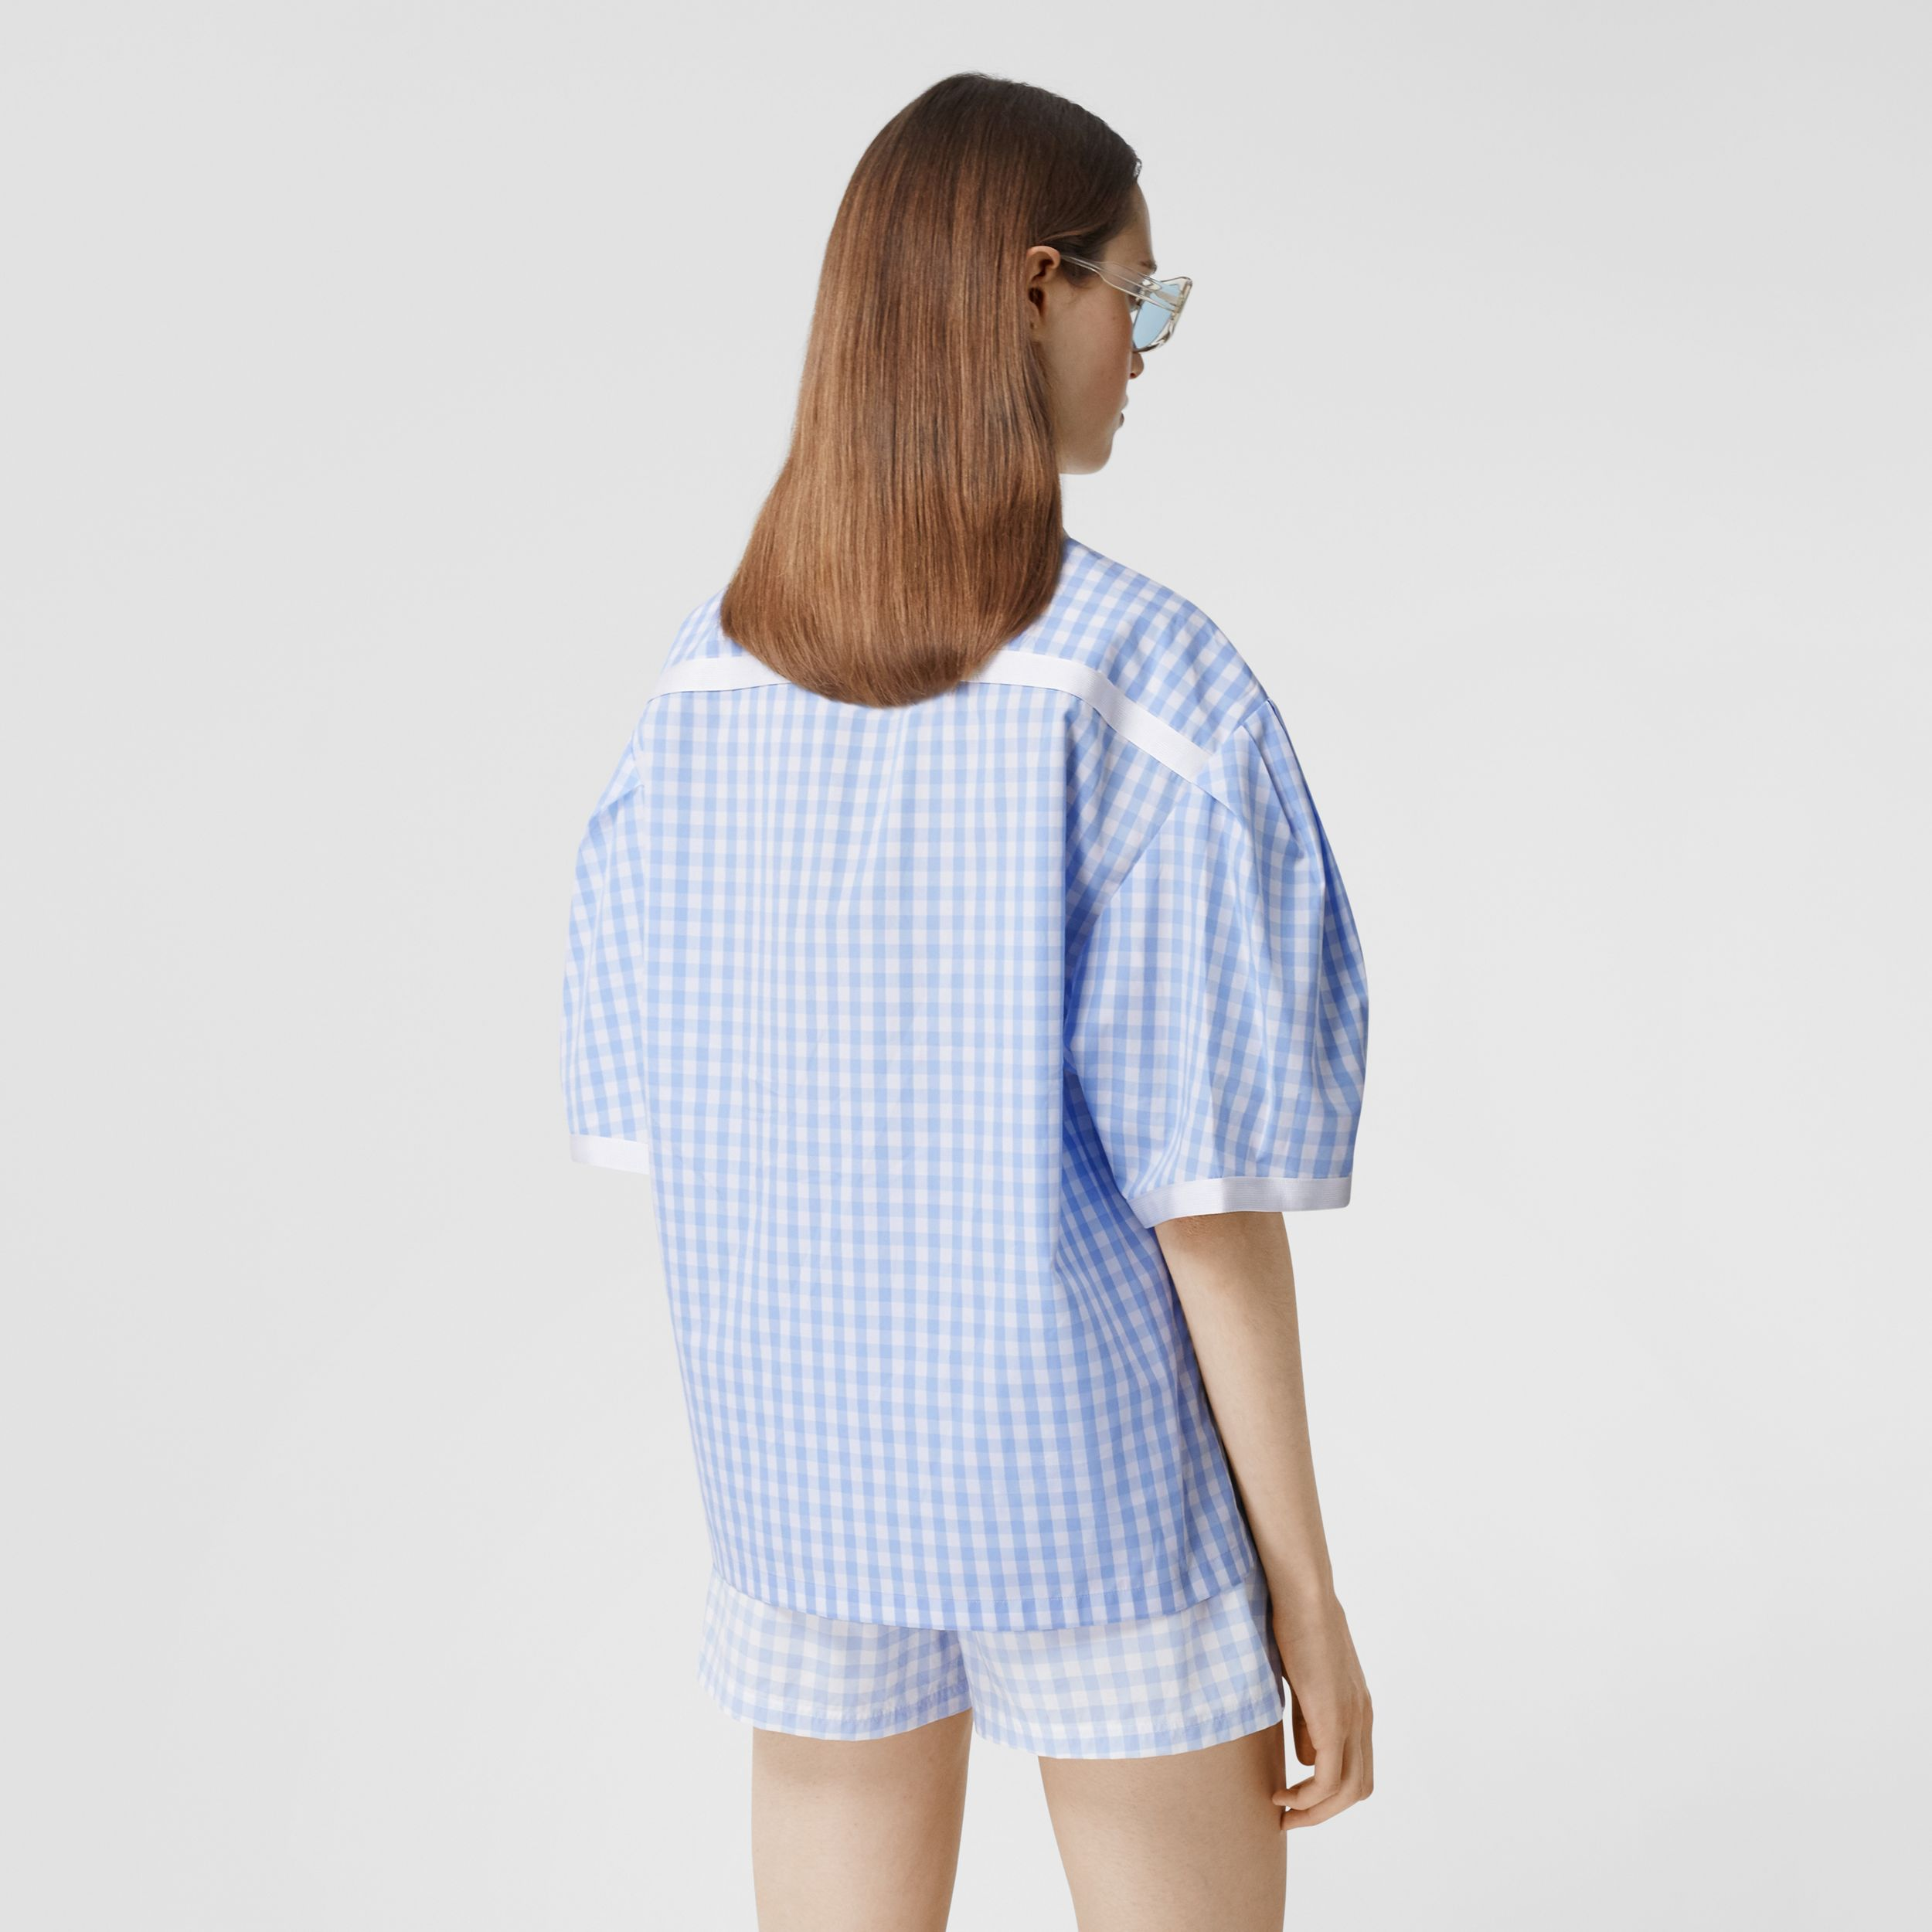 Puff-sleeve Gingham Cotton Oversized Shirt in Pale Blue - Women | Burberry - 3